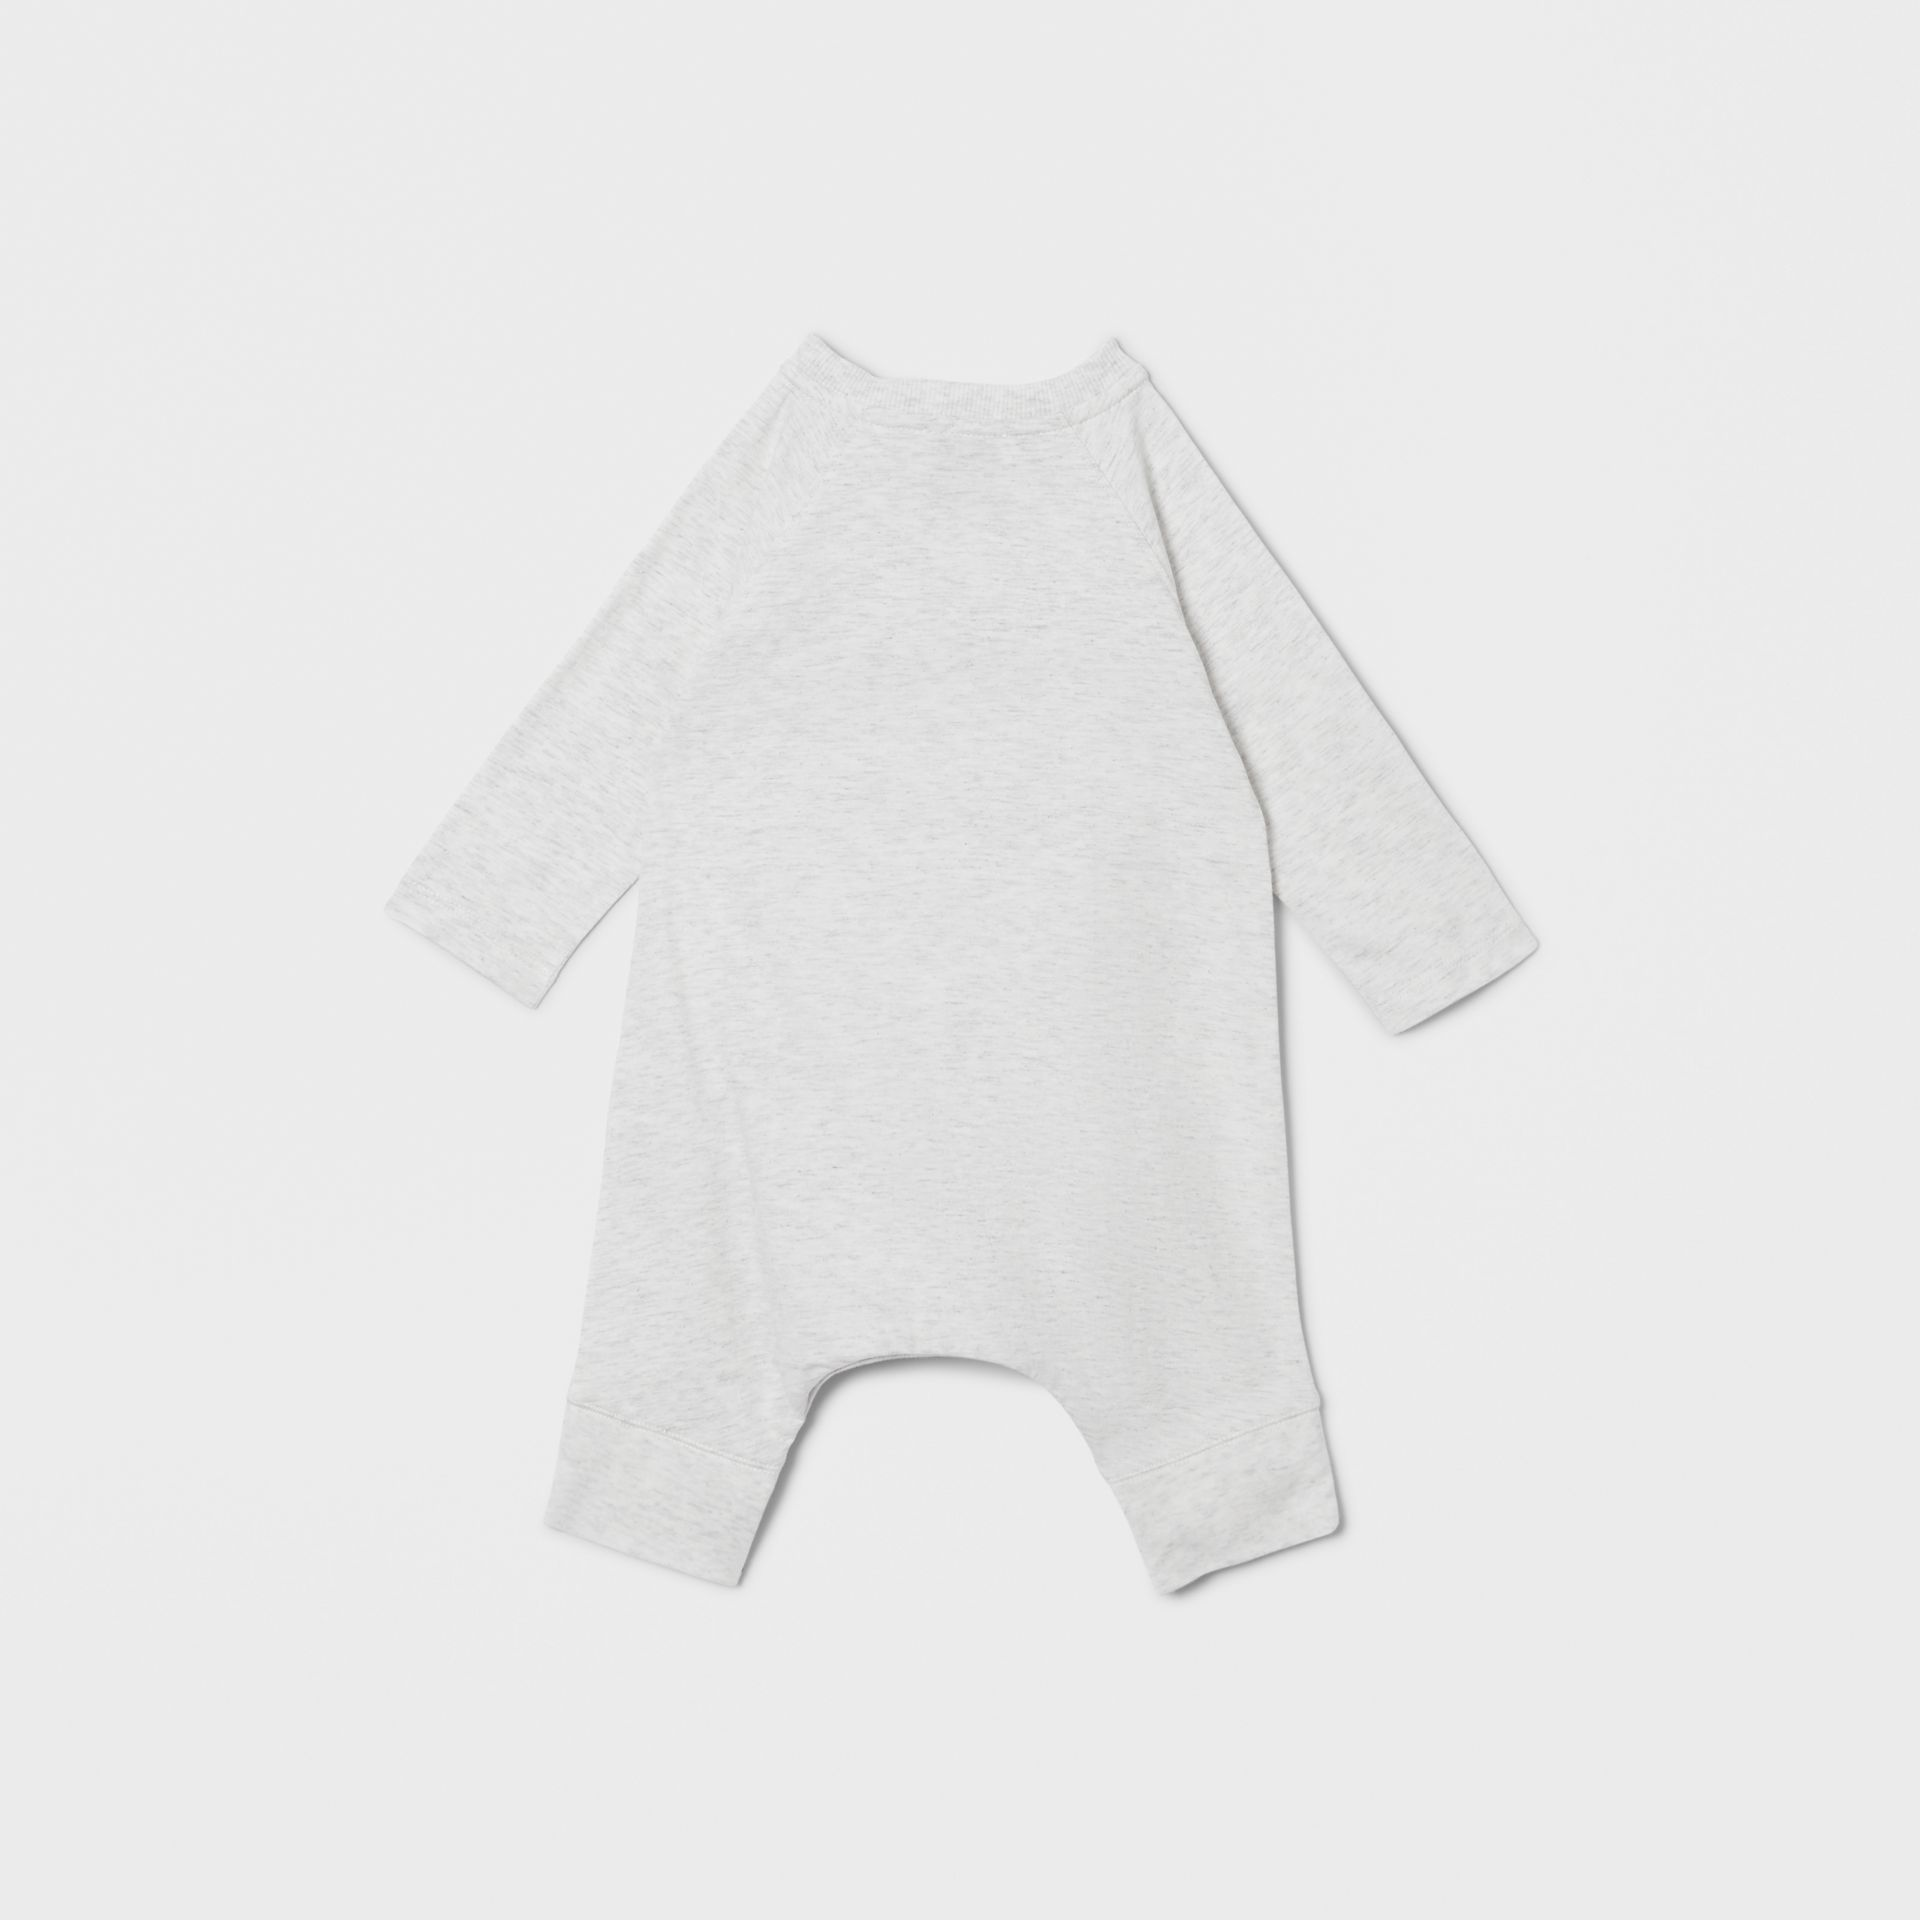 Logo Print Cotton Three-piece Baby Gift Set in White Melange - Children | Burberry - gallery image 4